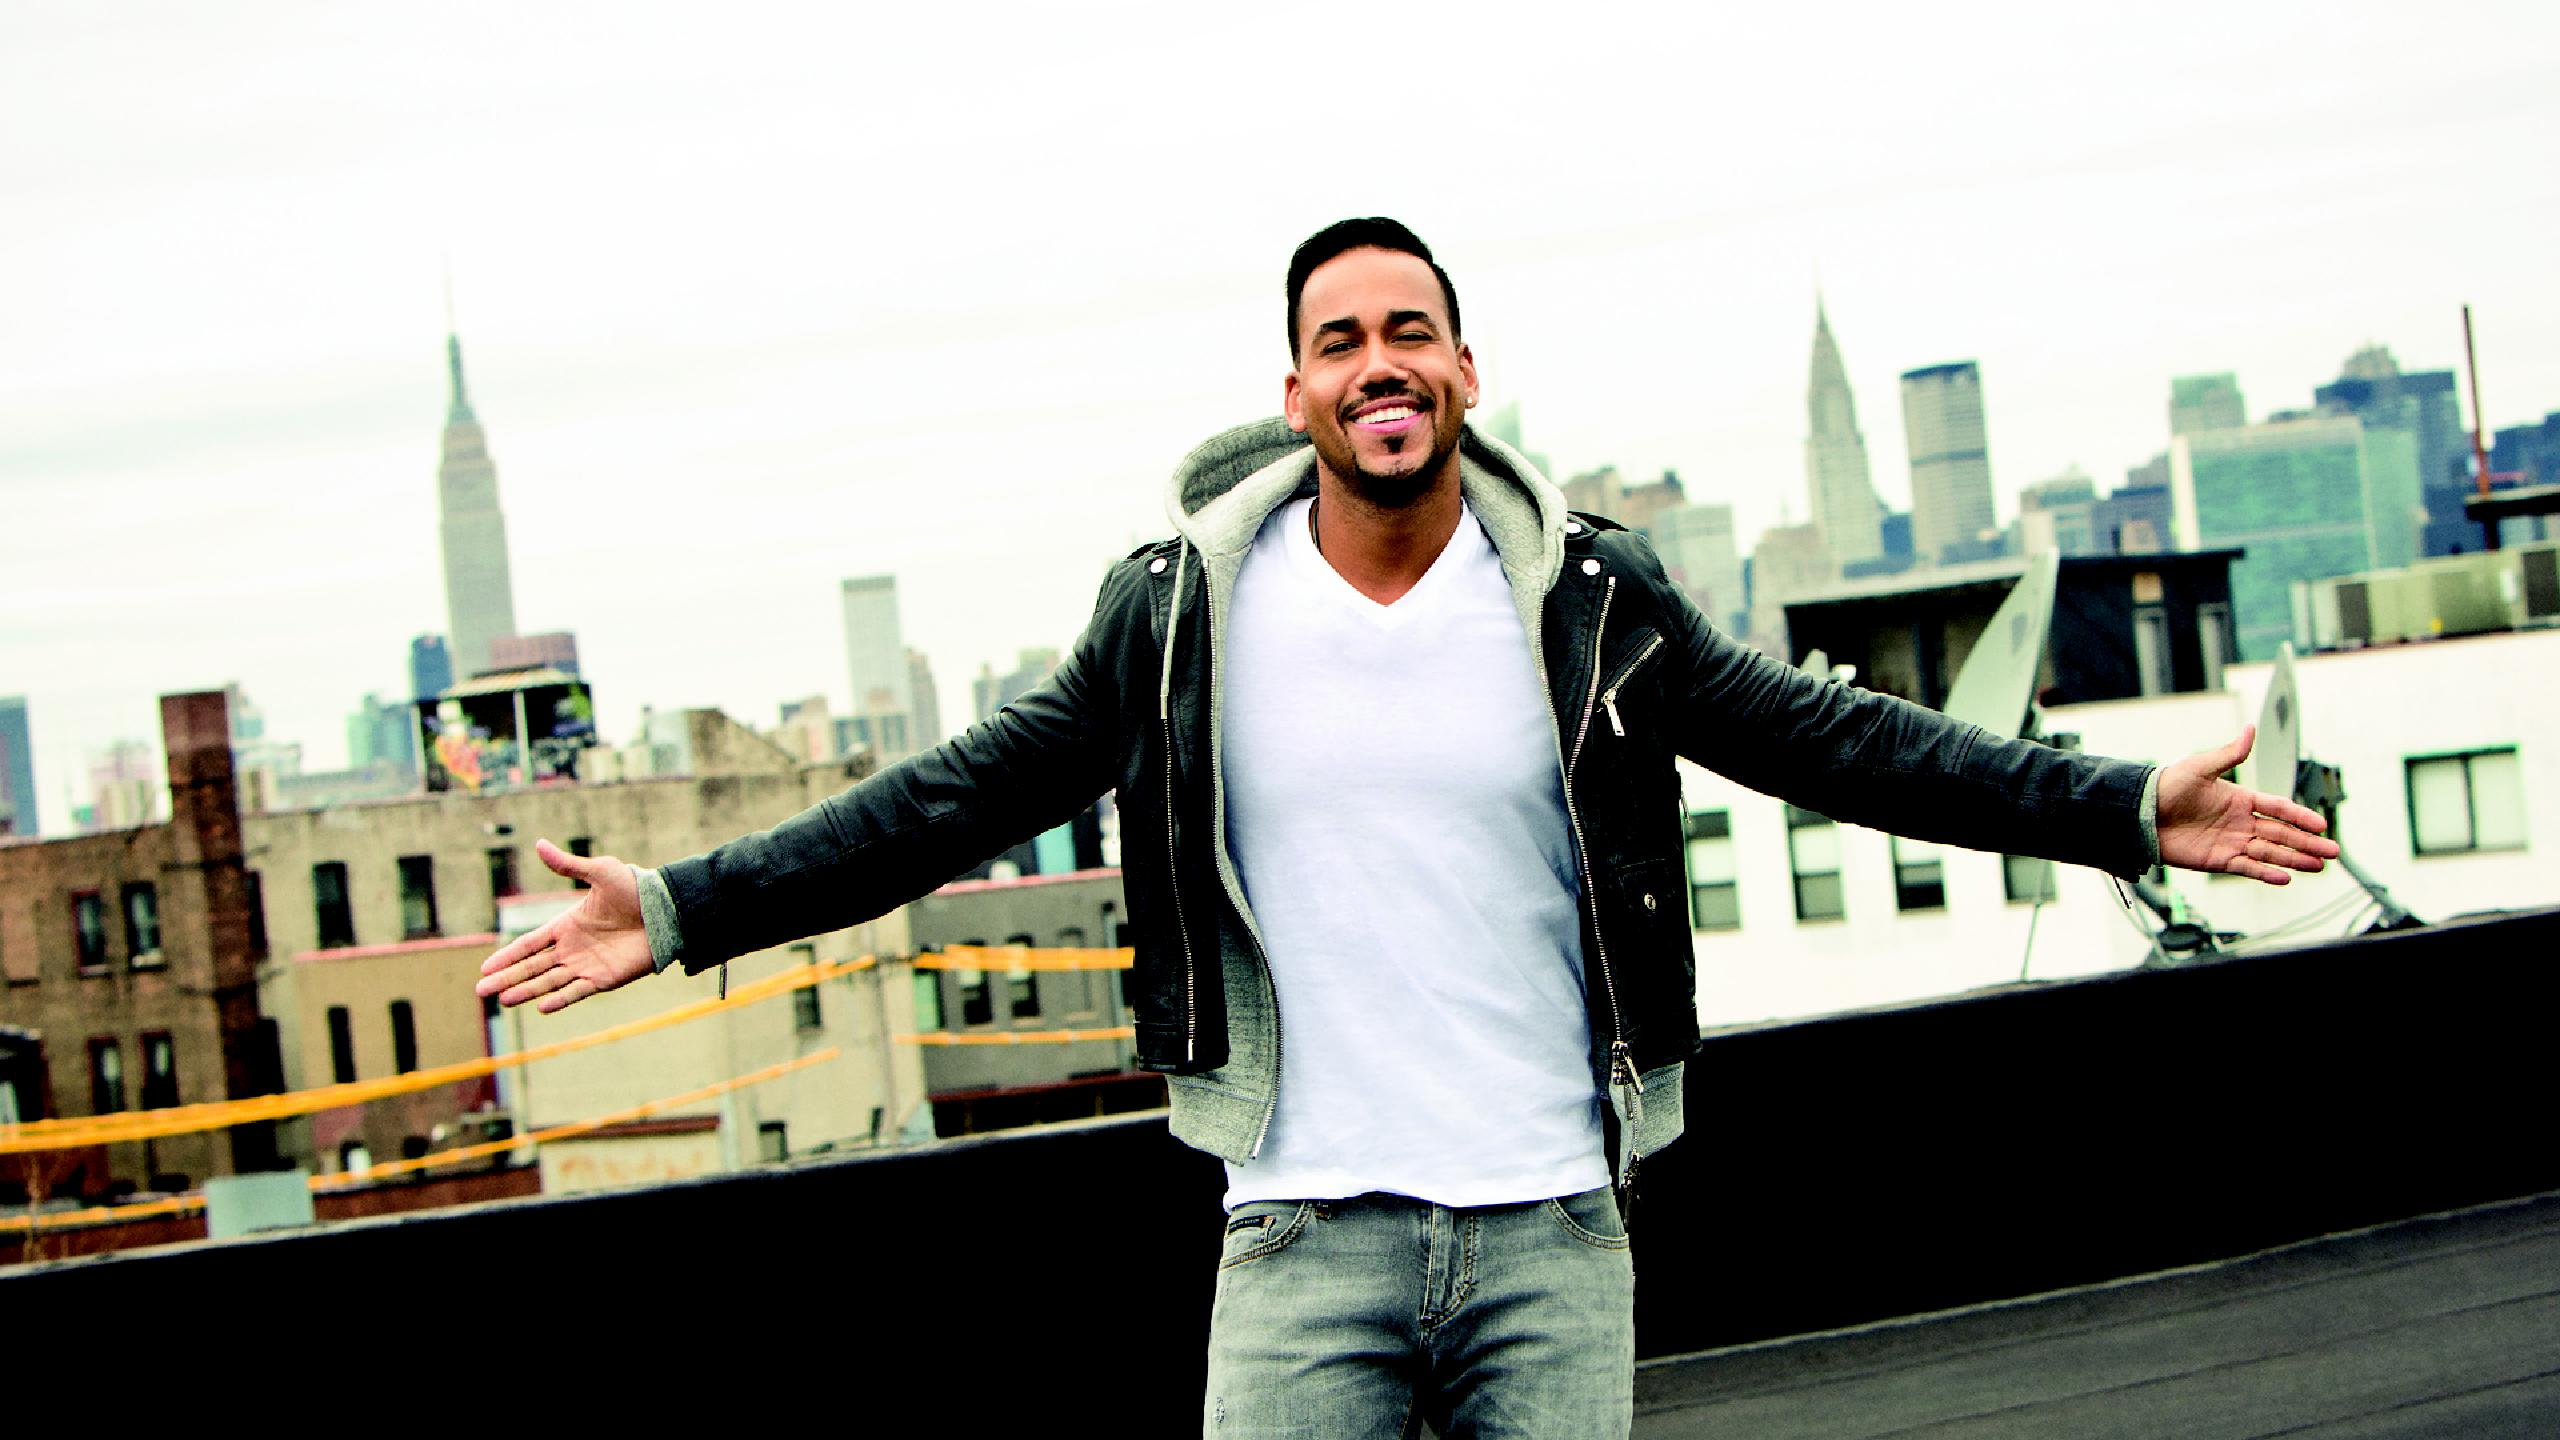 Romeo Santos Tour 2020.Romeo Santos Tour Dates 2019 2020 Romeo Santos Tickets And